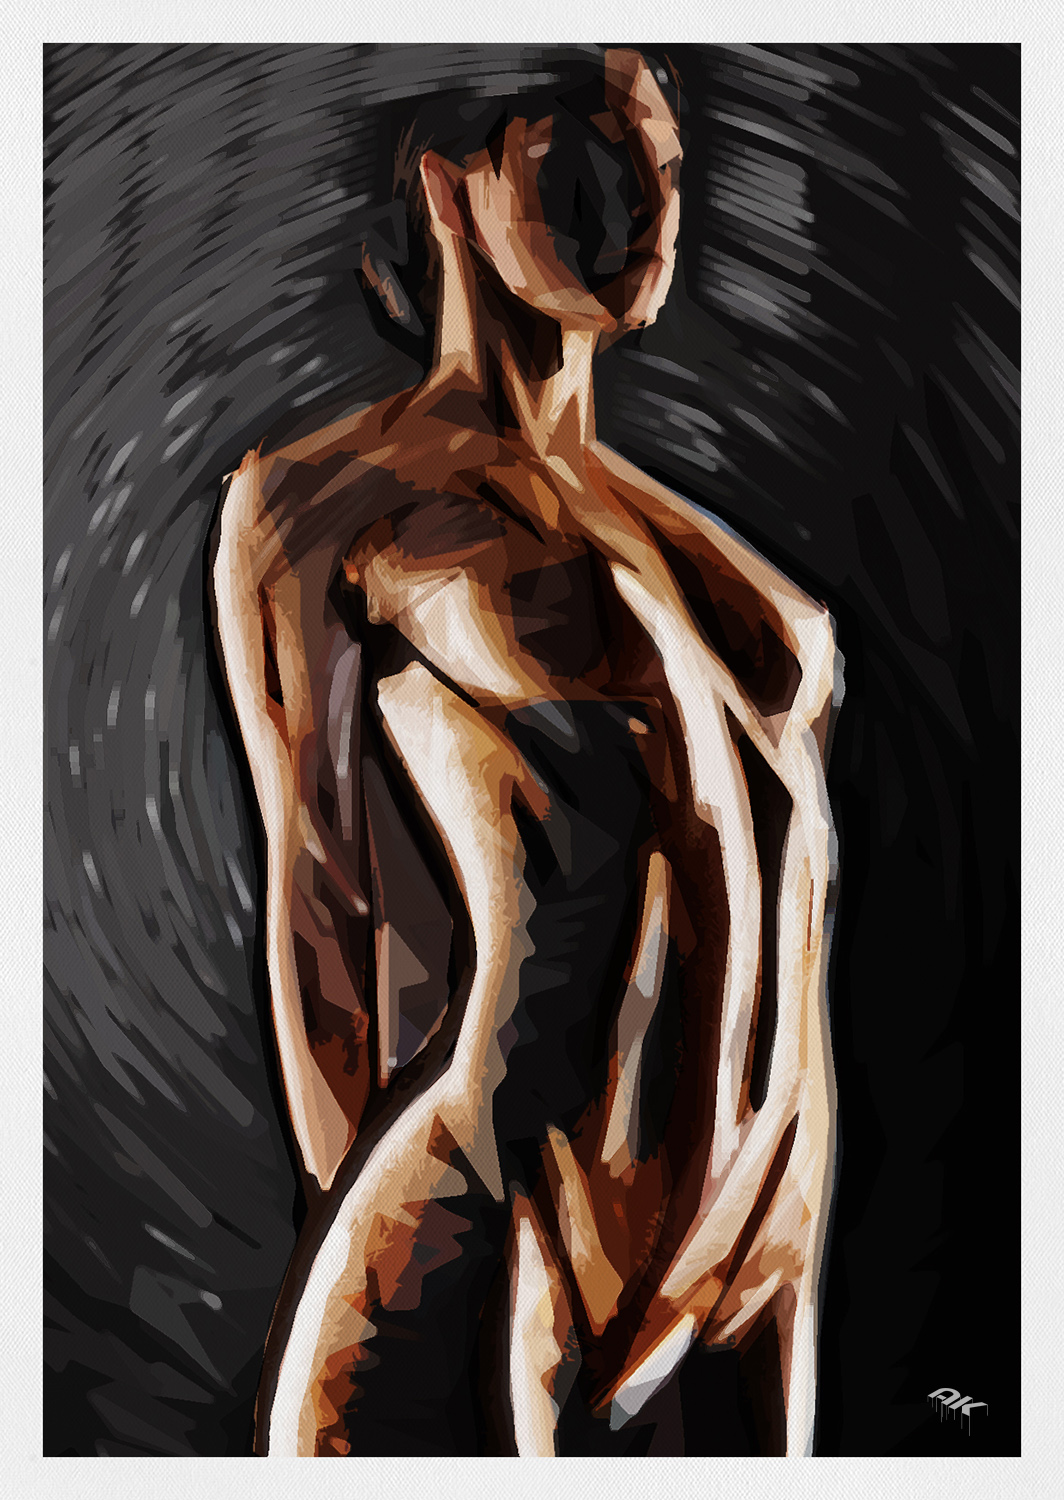 life-drawing-series-3-image-6-copyright-andrew-knutt